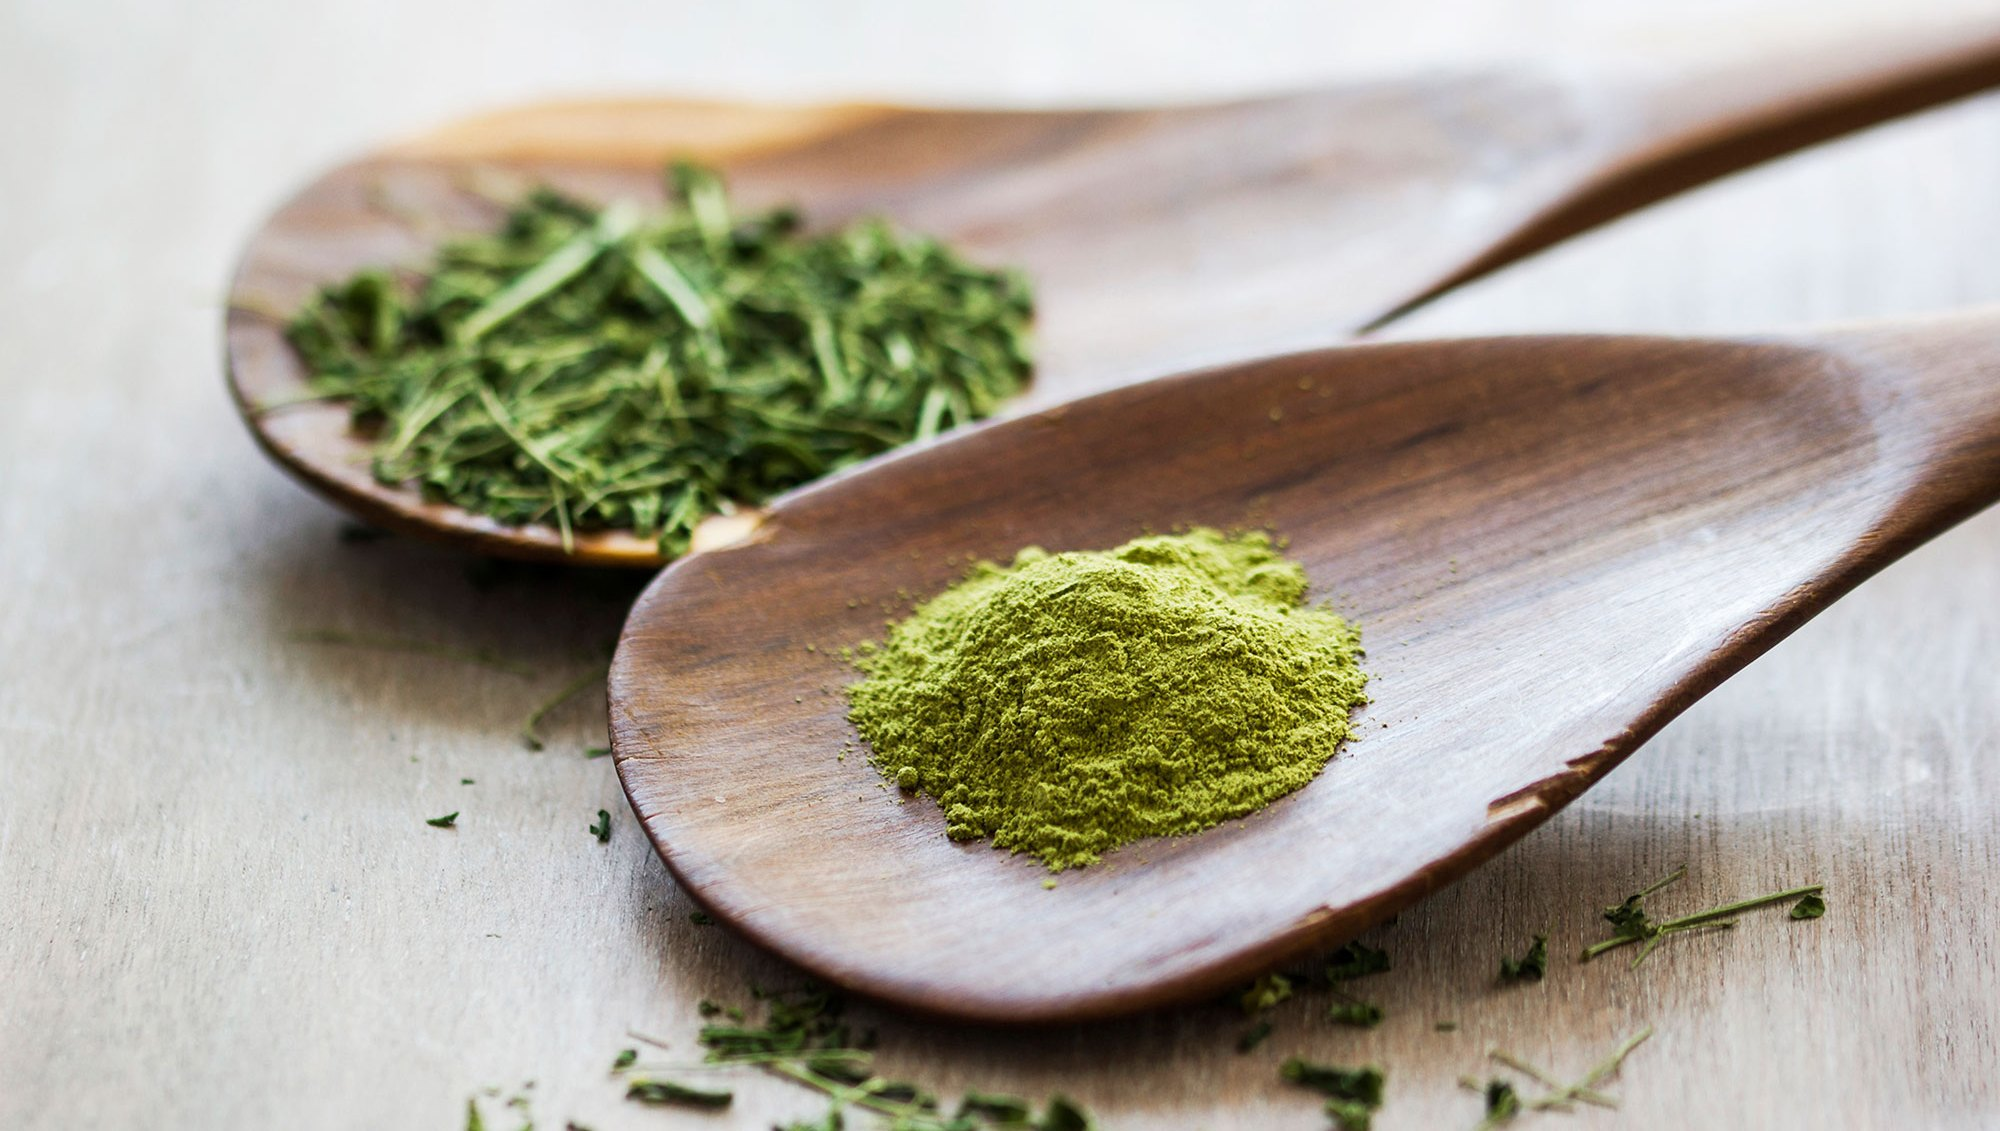 Moringa and Moringa powder